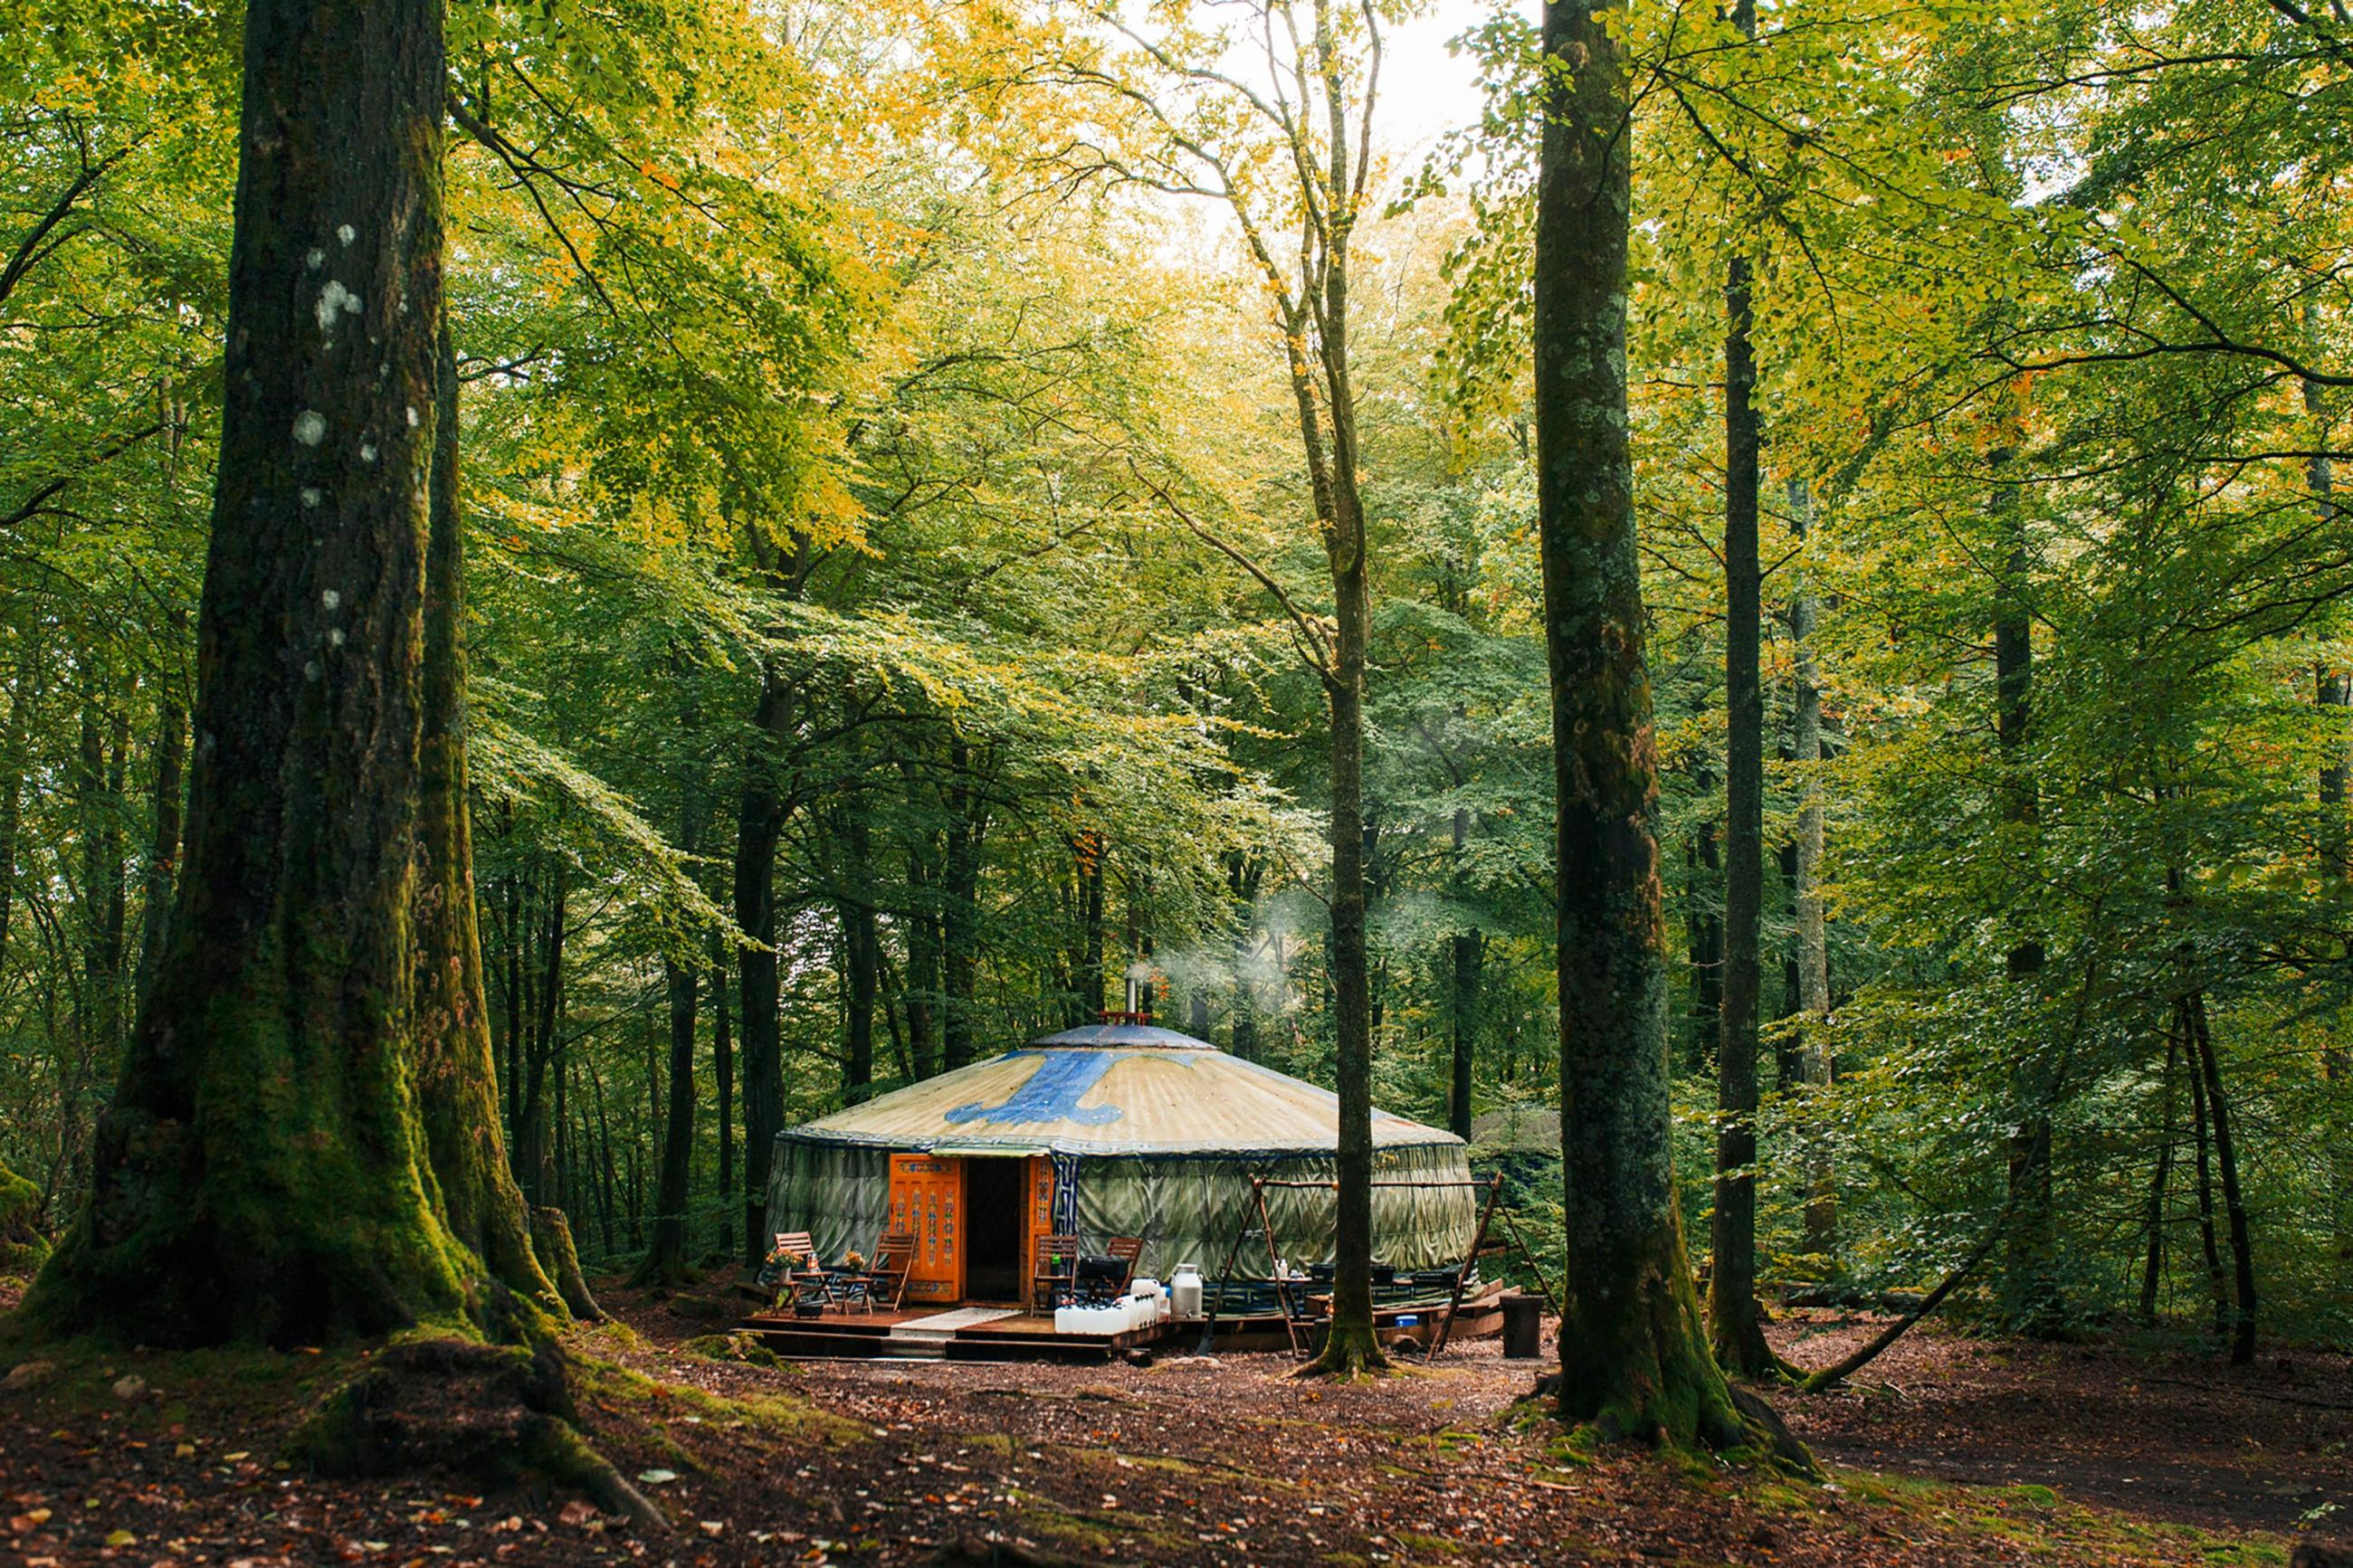 Large round tent with a dining area, located inside a forest.